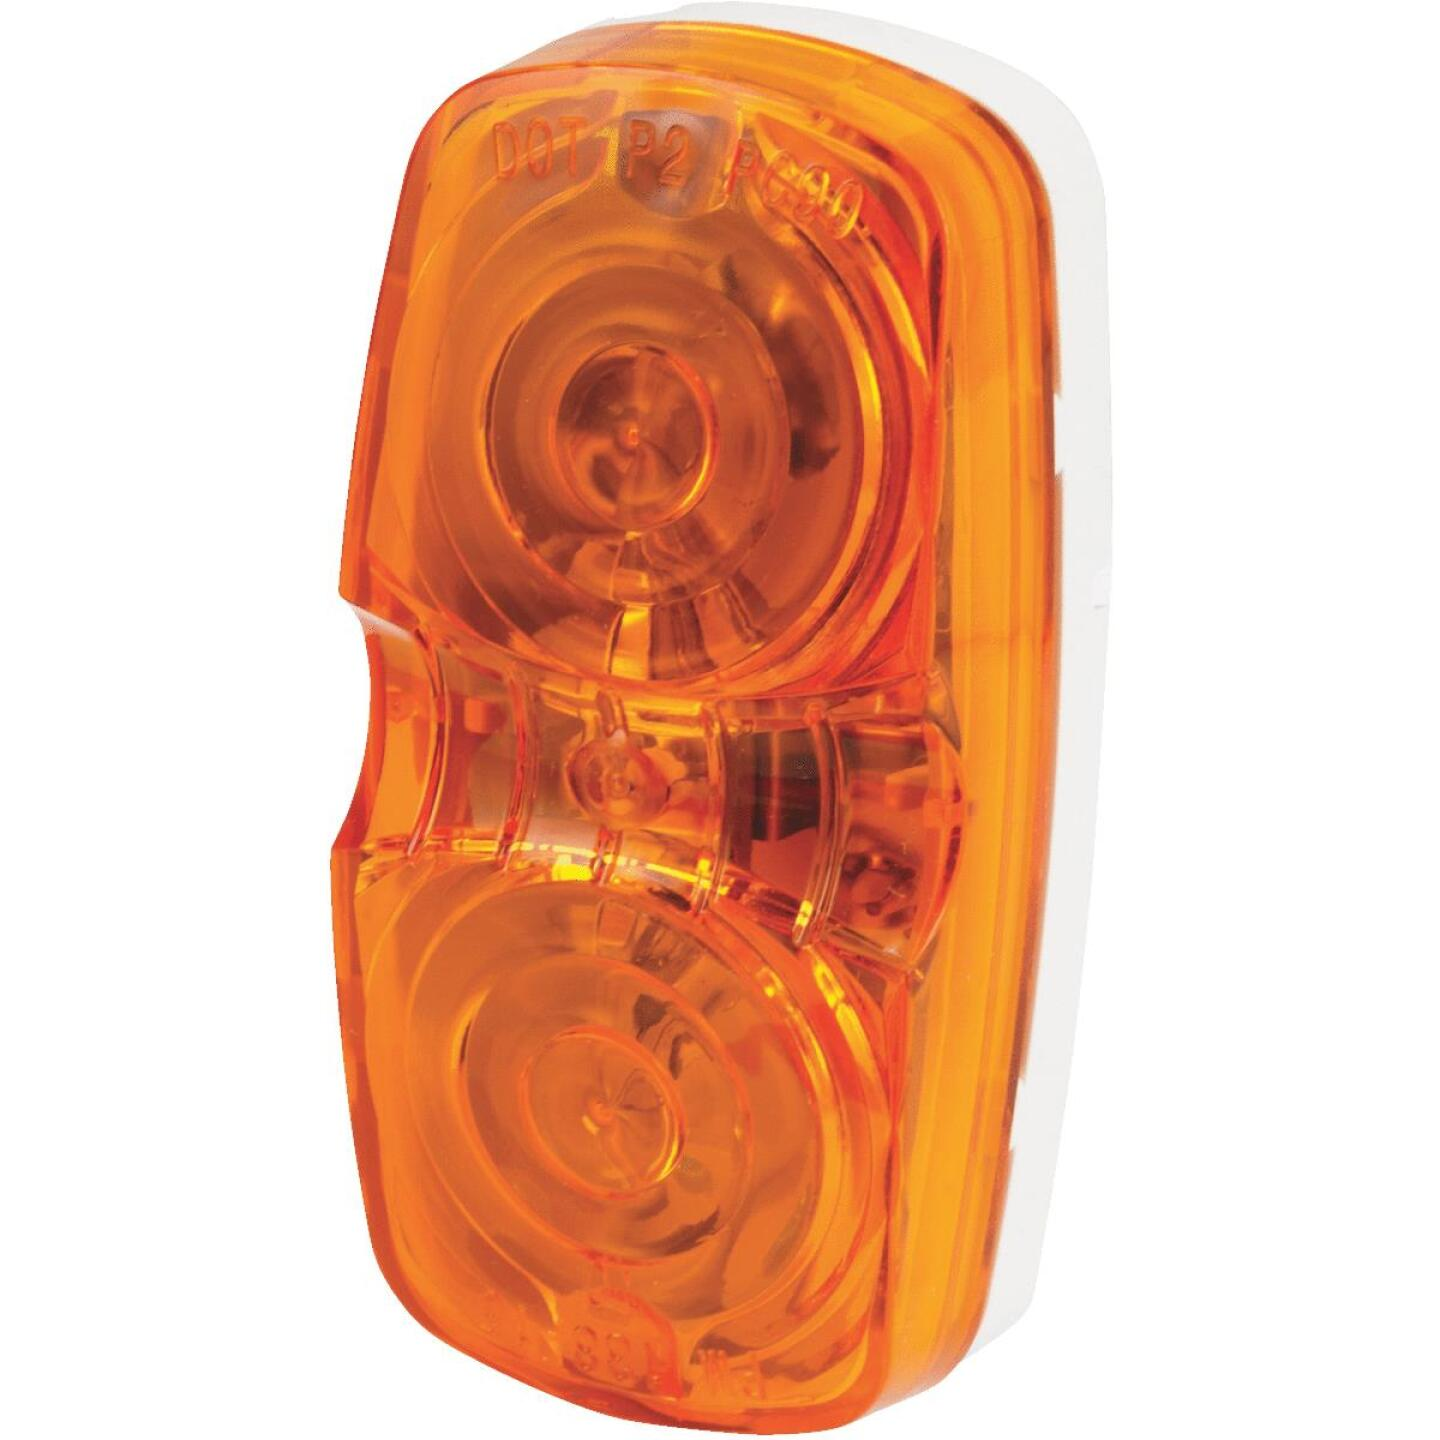 Peterson Low-Profile 12 V. Amber Clearance Light Image 2